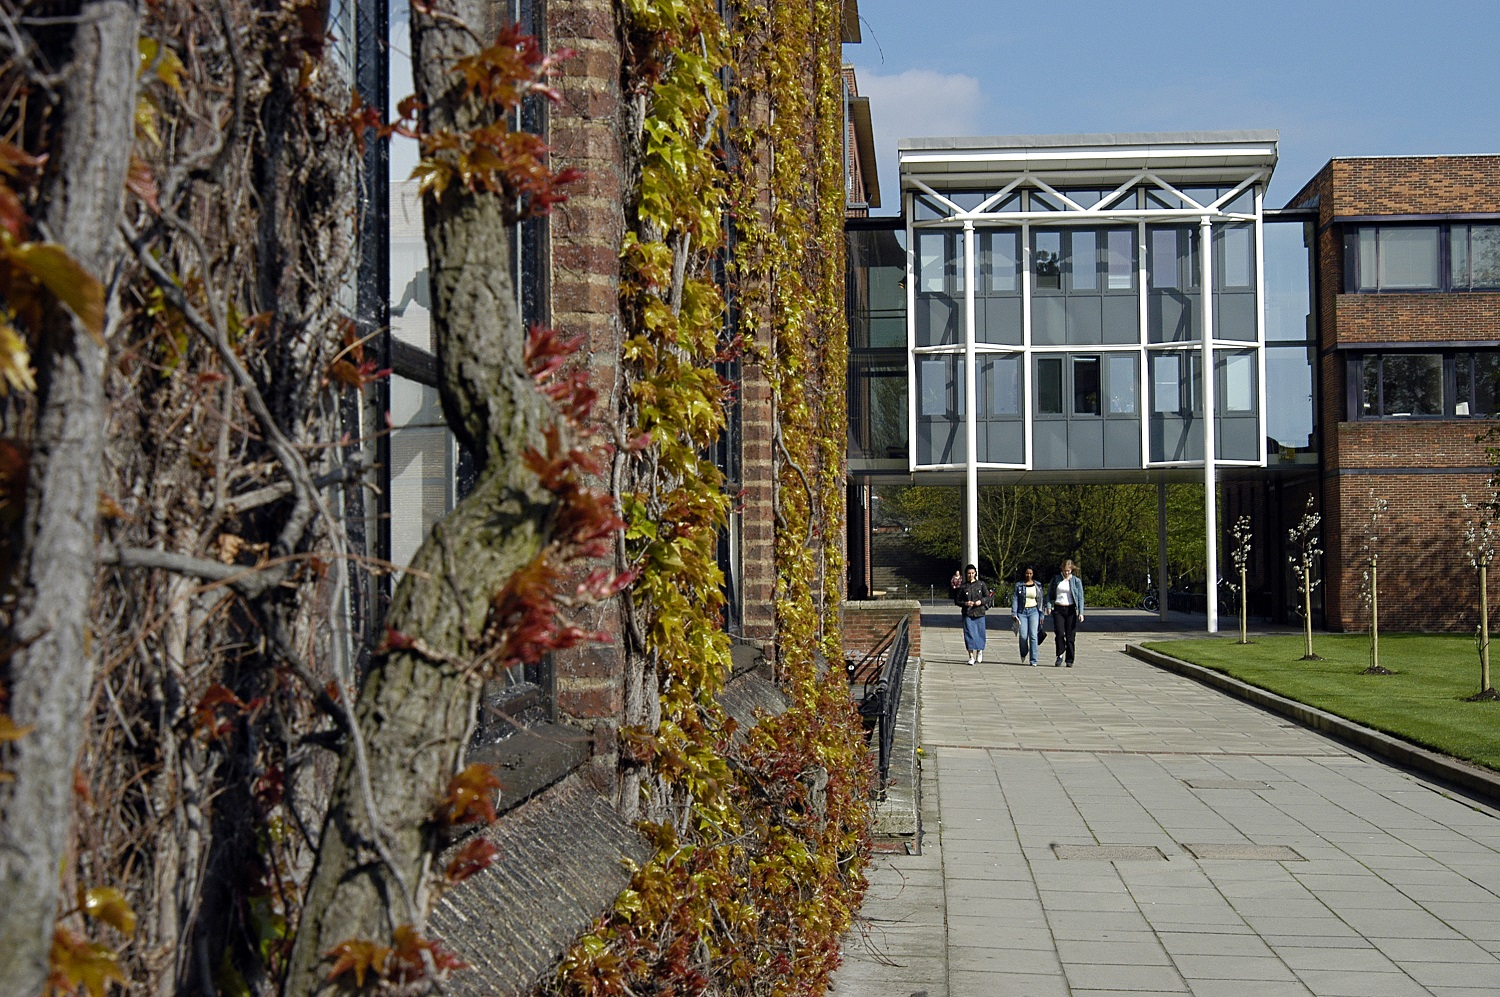 University of Hull walkway to Ferens building